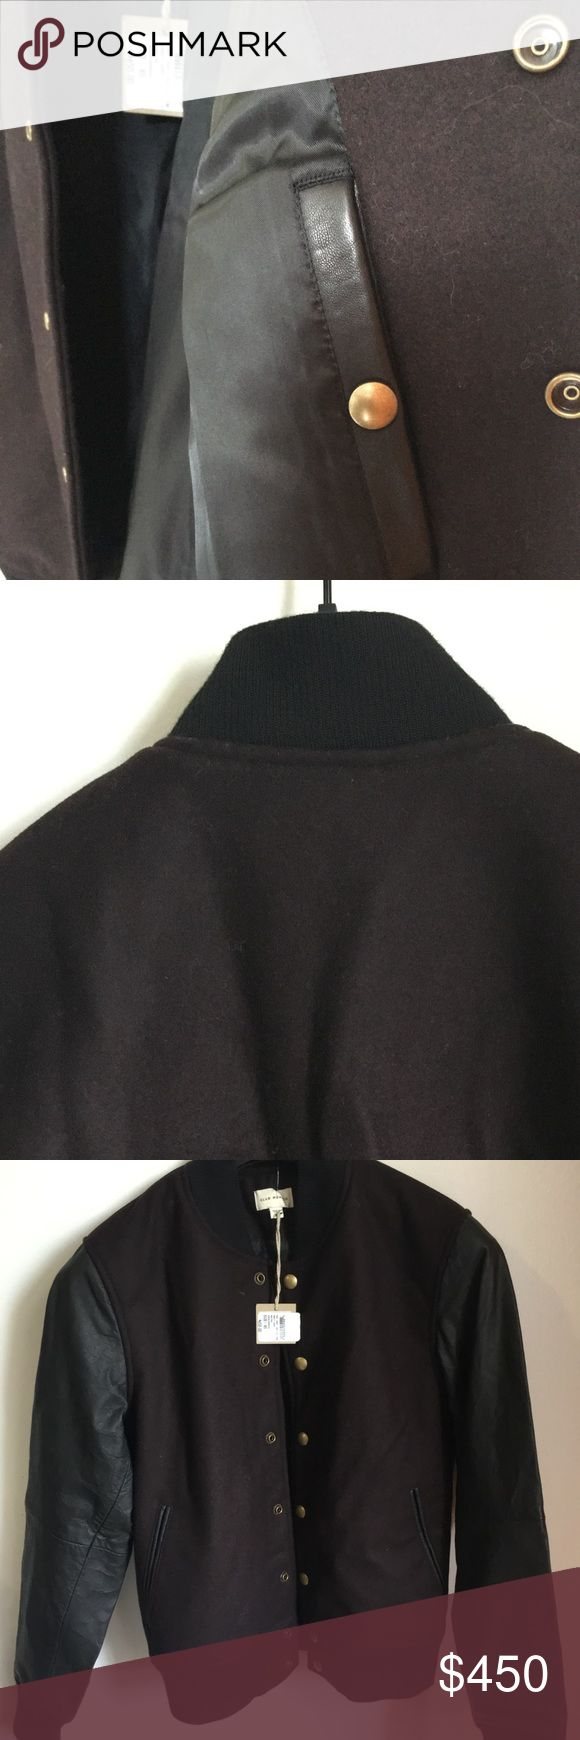 XS Club Monaco Bordeaux Bomber w/Leather Sleeve Perfect early spring/late fall jacket from Club Monaco. Ribbed bottom so it sits on your waist.  Deep Merlot color with black sleeves. Brand new off the rack. Original price $650. Deeply discounted. Club Monaco Jackets & Coats